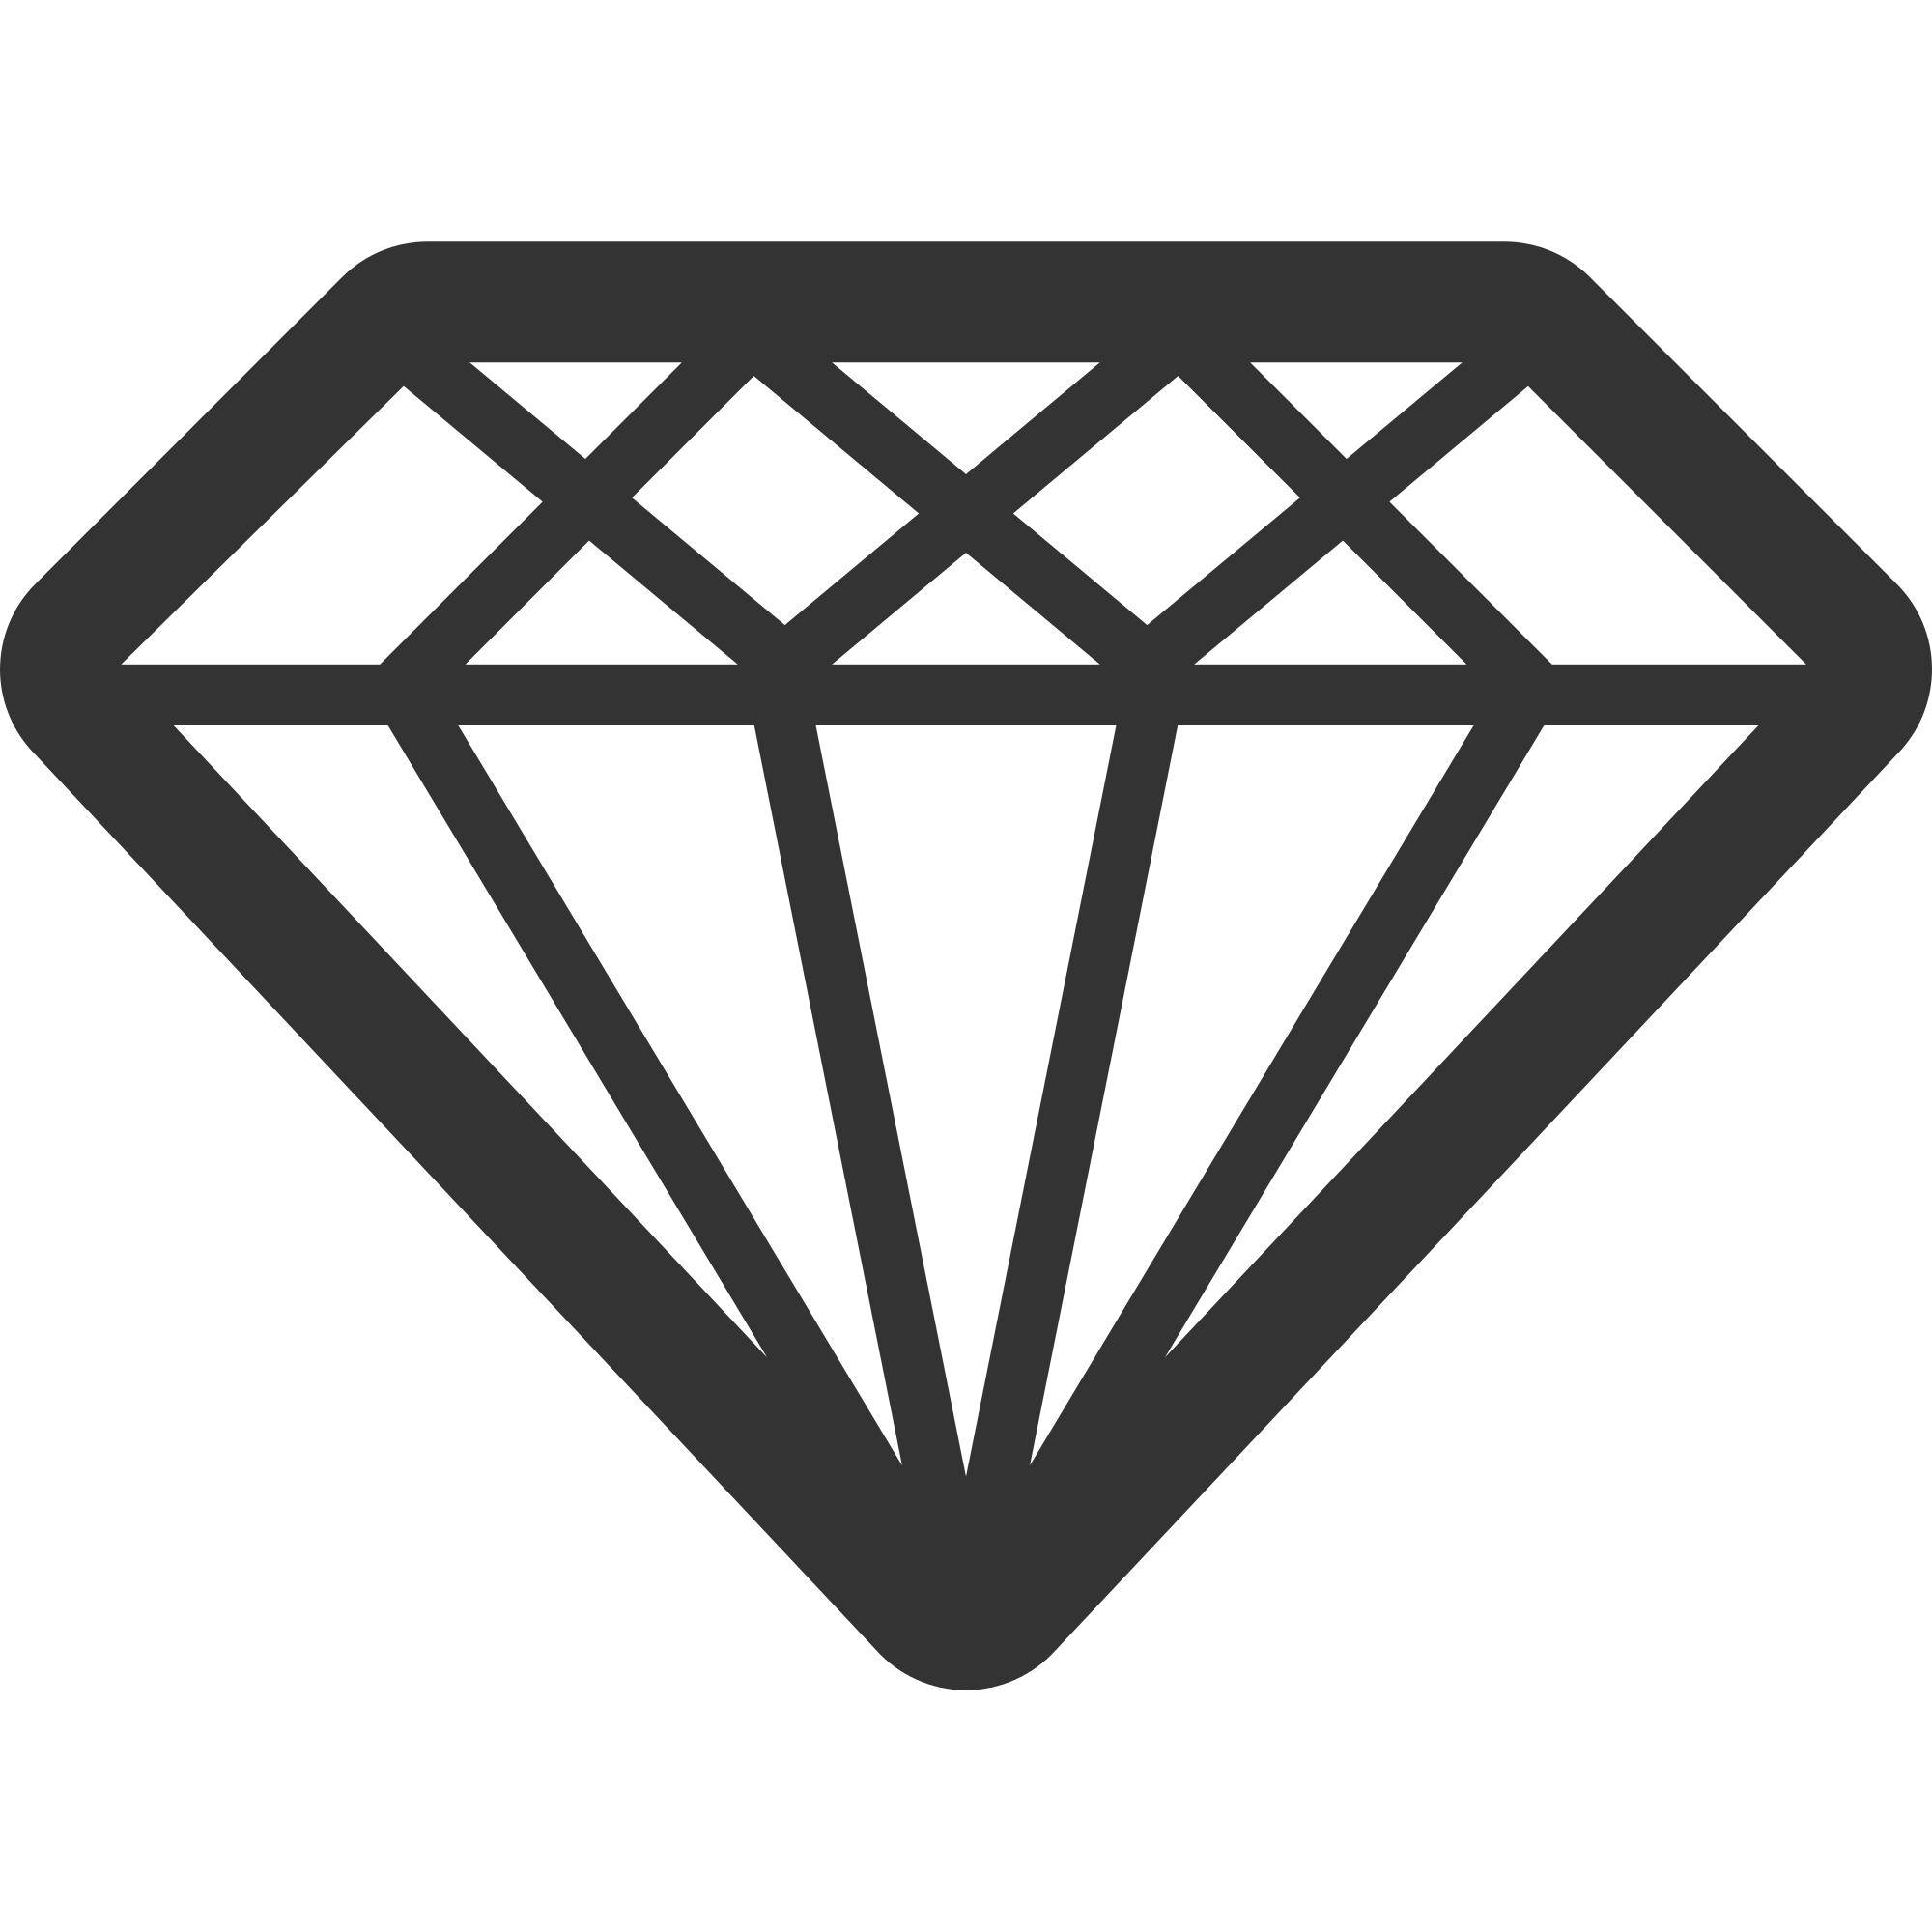 Clipart diamond svg. File linecons wikimedia commons